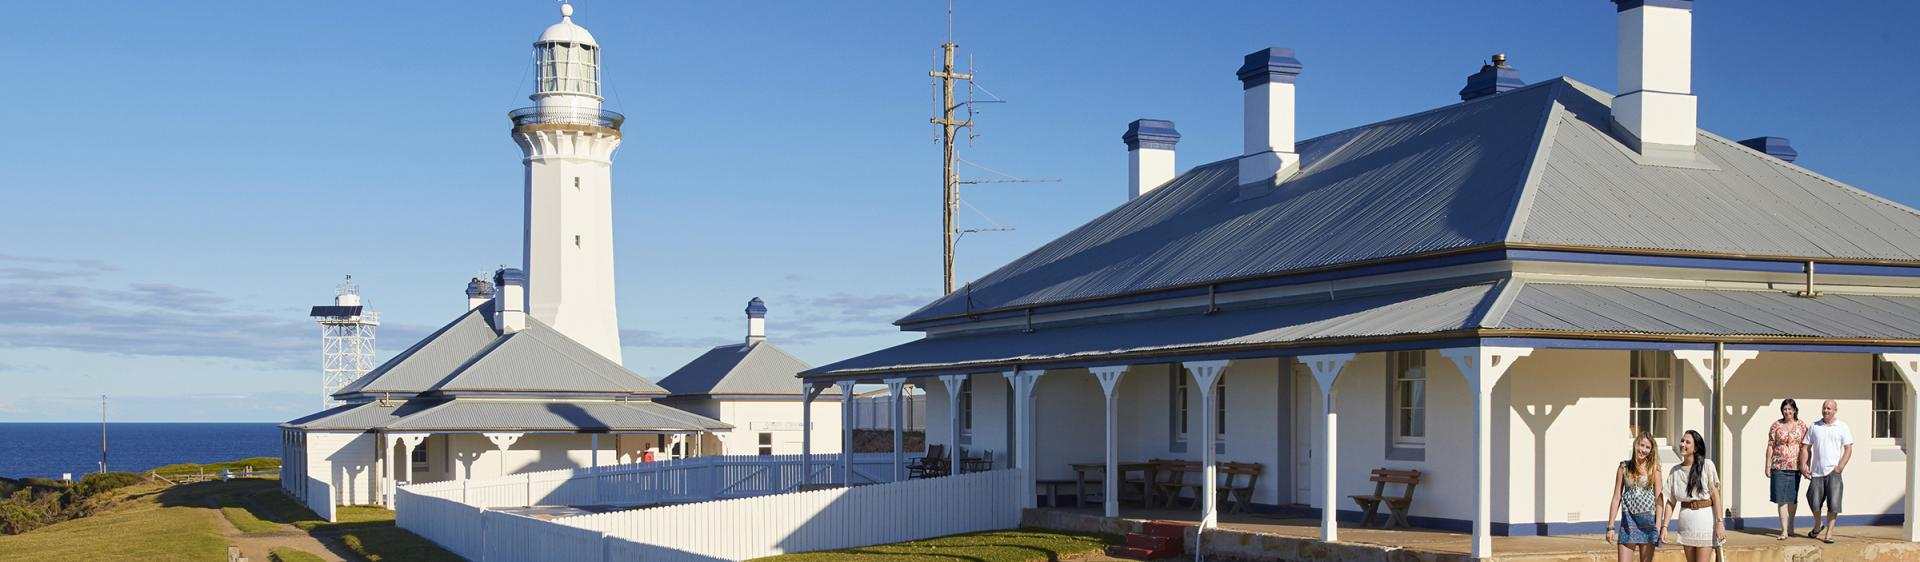 Eden - Whale watching, Accommodation, Events